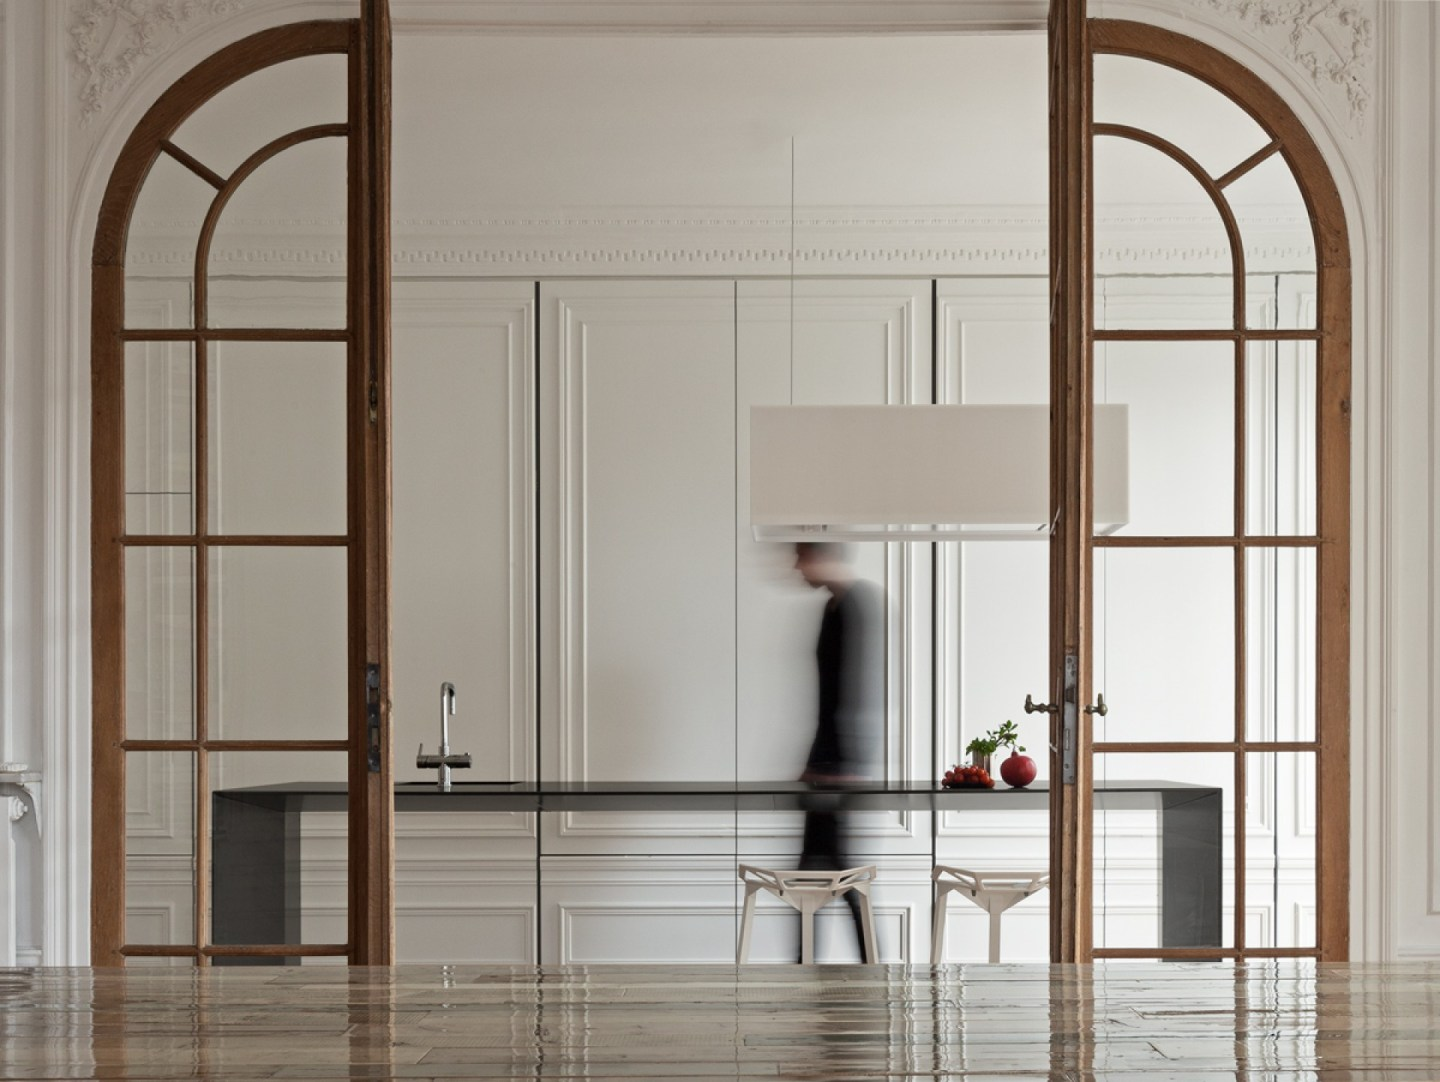 1 - Invisible kitchen - design by 129